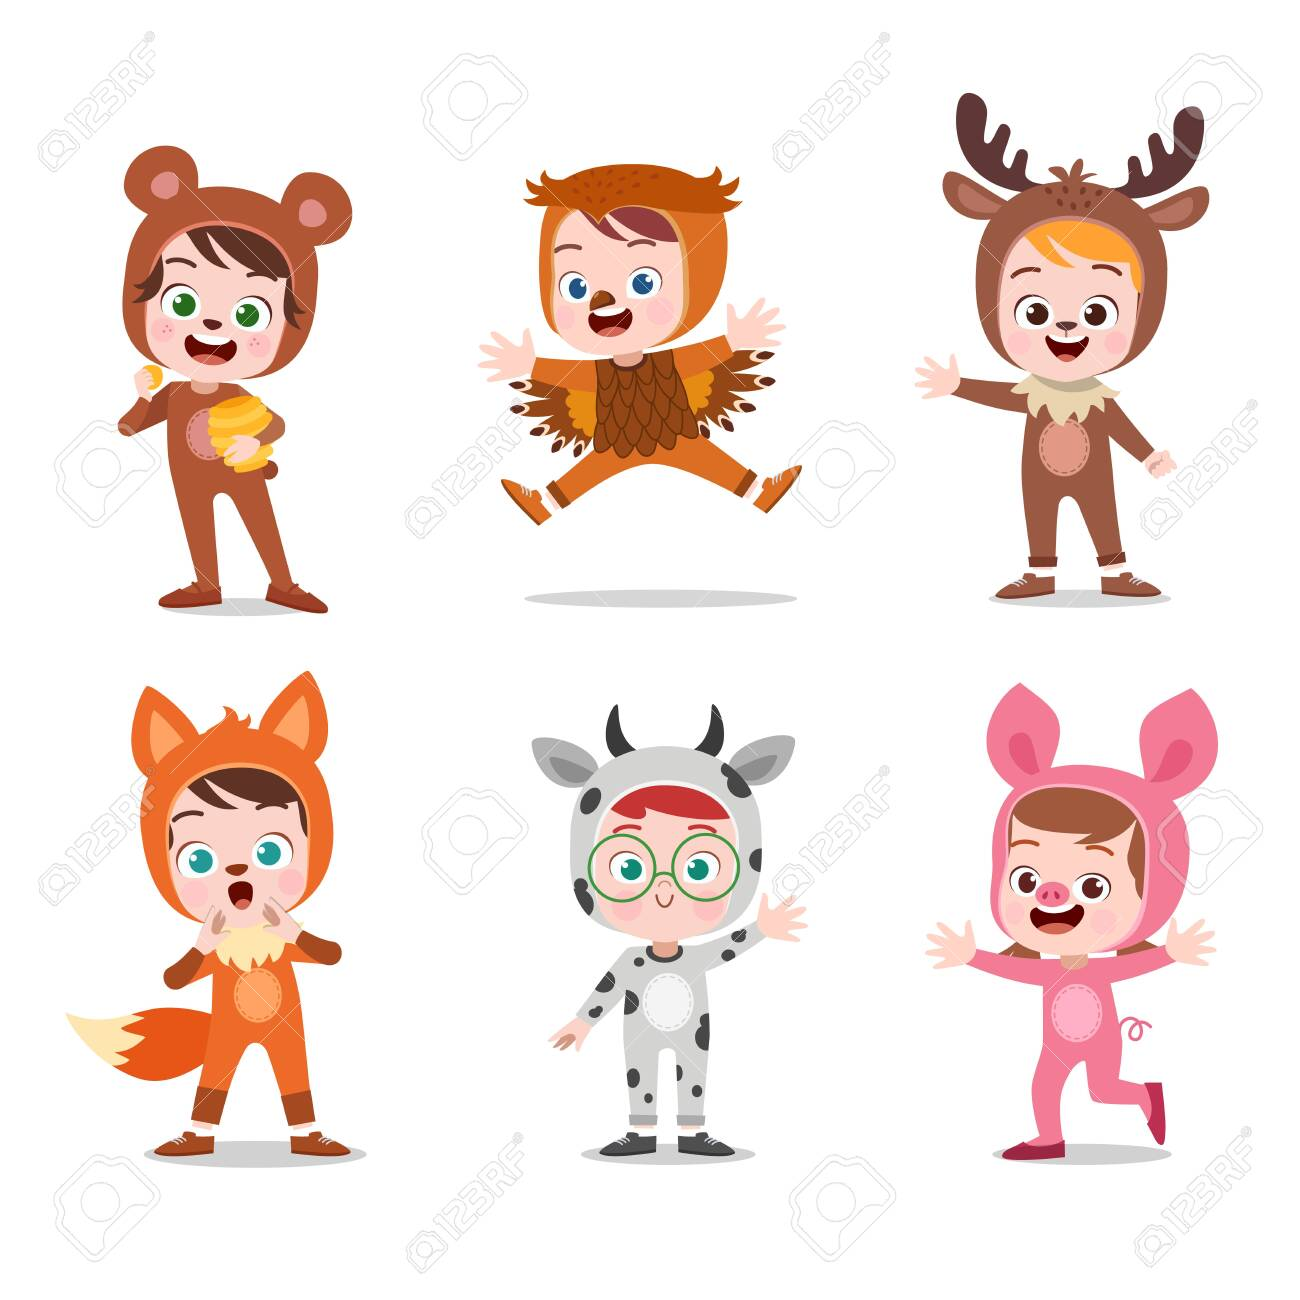 kids hapy cute with costume vector illustration - 138510994